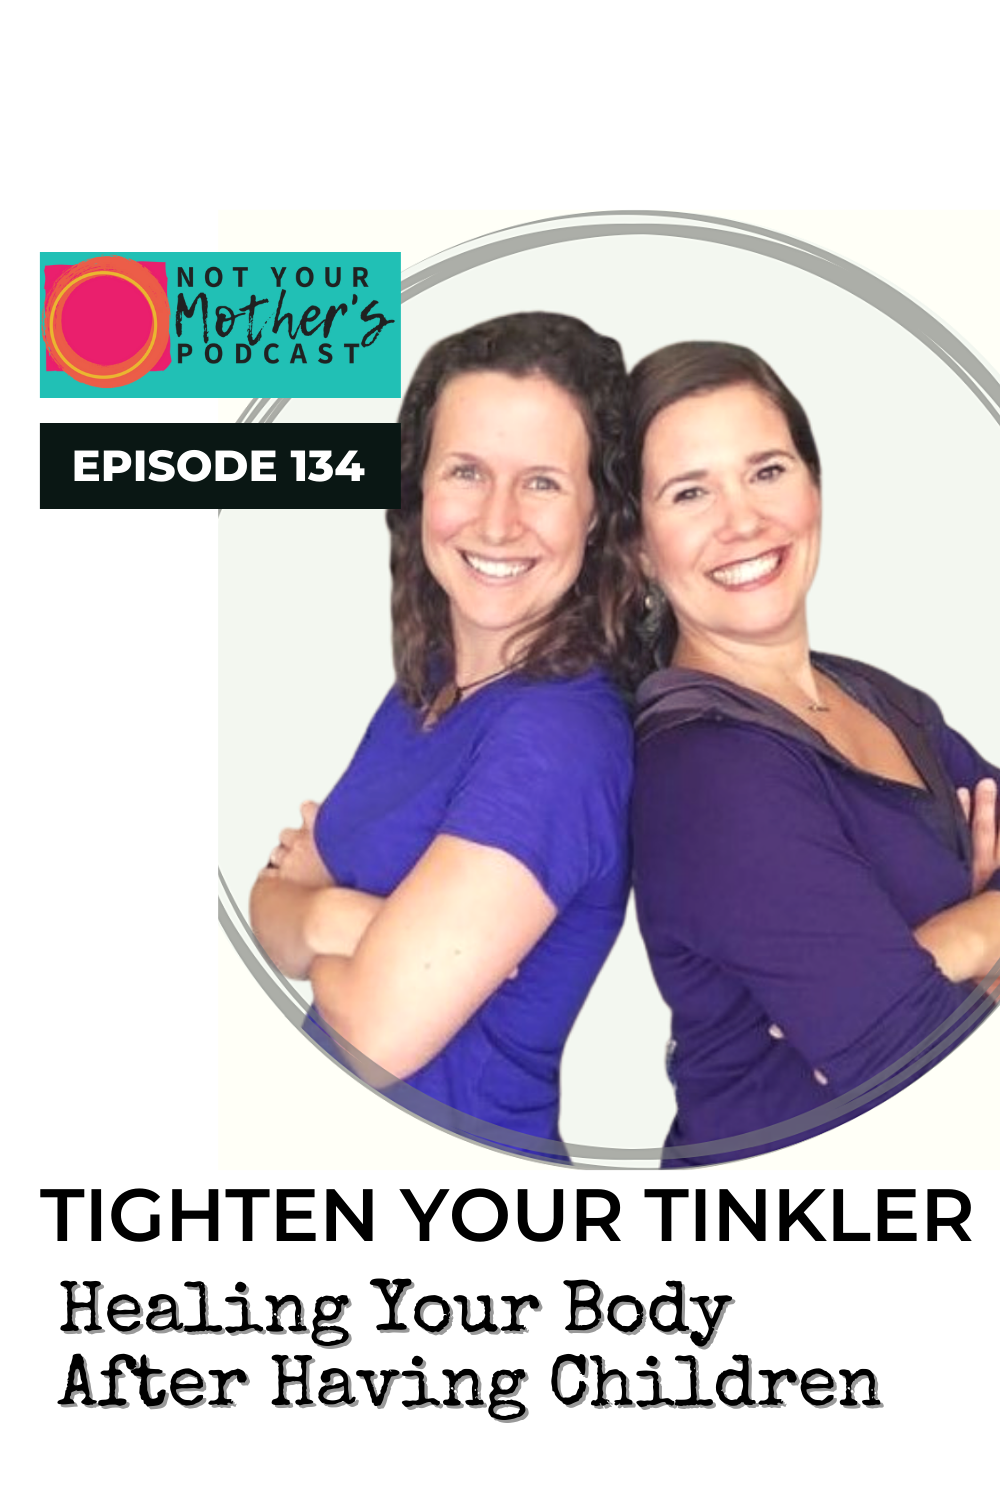 Ep. 134: Healing Your Body After Having Children with Tighten Your Tinkler PIN